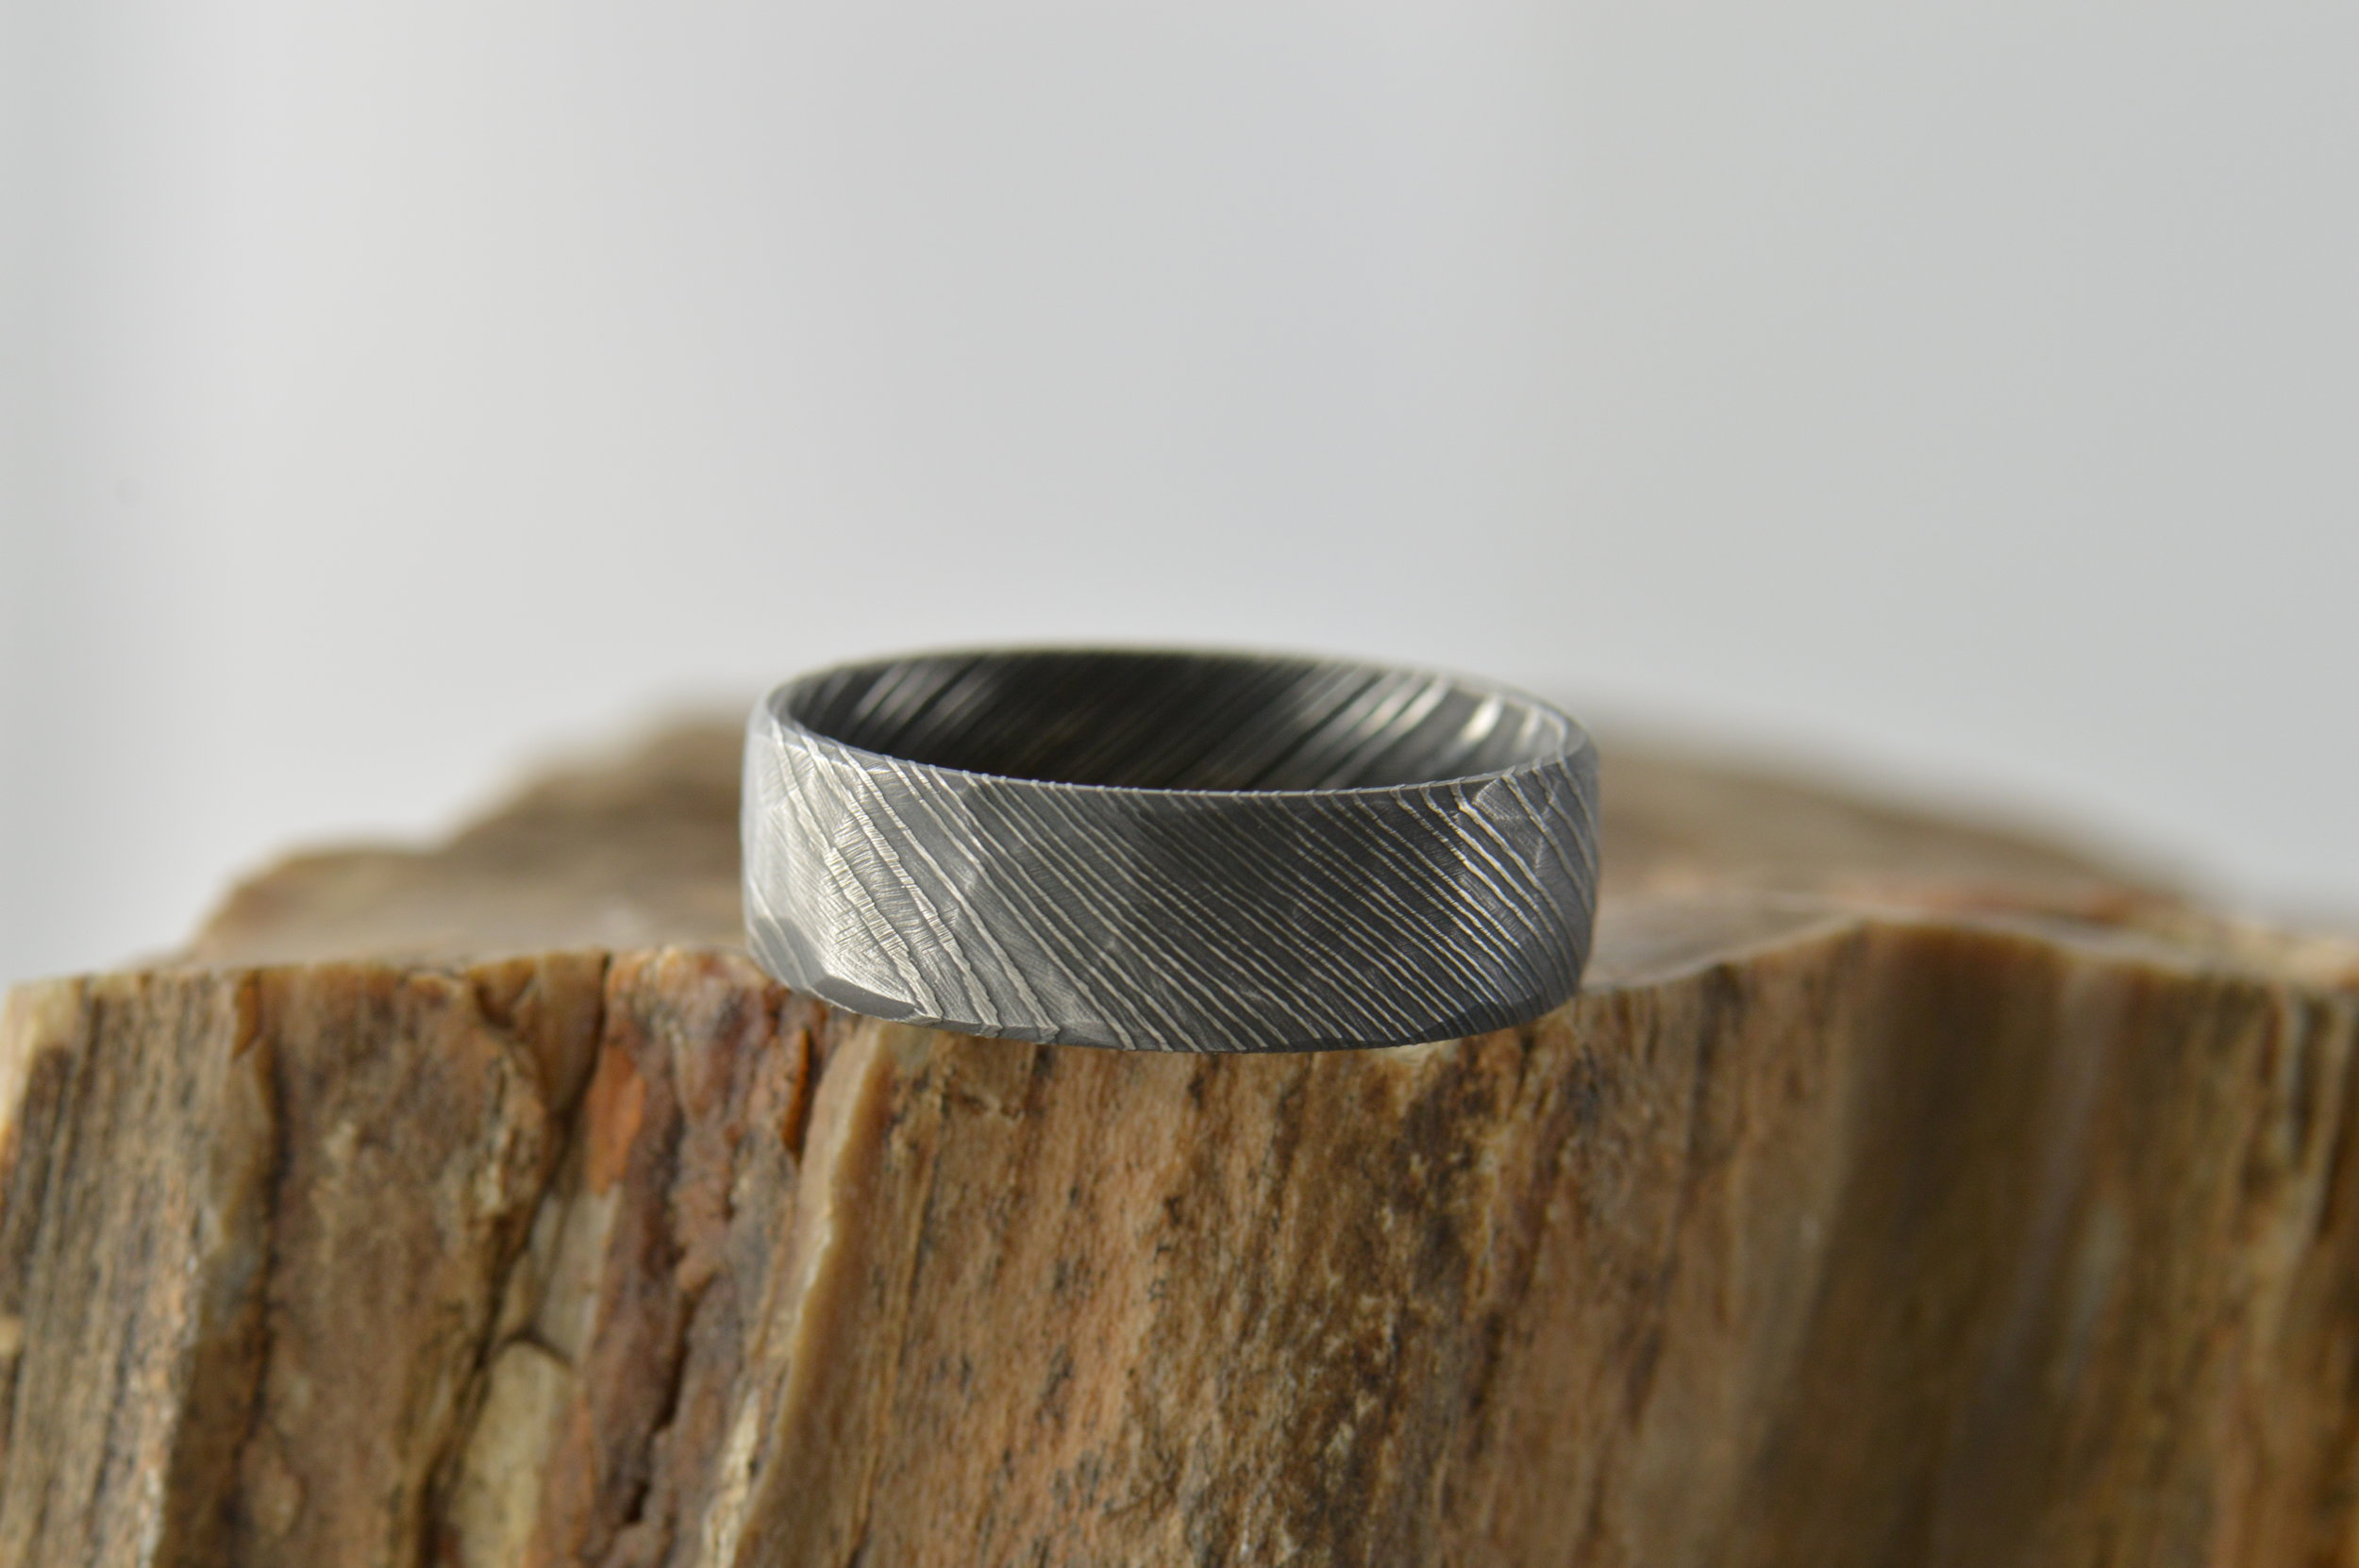 darvier-faceted-carbon-damascus-ring.JPG